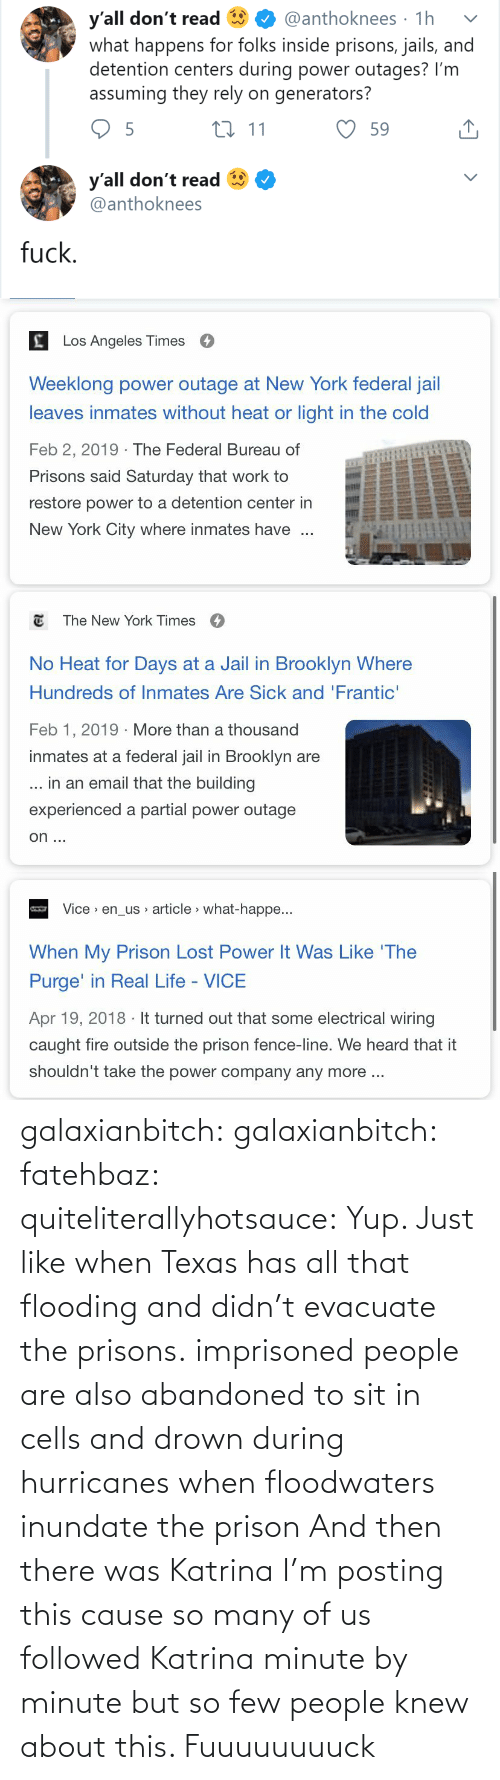 New York: y'all don't read  what happens for folks inside prisons, jails, and  detention centers during power outages? I'm  assuming they rely on generators?  @anthoknees · 1h  27 11  59  y'all don't read  @anthoknees  fuck.   Los Angeles Times  Weeklong power outage at New York federal jail  leaves inmates without heat or light in the cold  Feb 2, 2019 · The Federal Bureau of  Prisons said Saturday that work to  restore power to a detention center in  New York City where inmates have   E The New York Times  O  No Heat for Days at a Jail in Brooklyn Where  Hundreds of Inmates Are Sick and 'Frantic'  Feb 1, 2019 · More than a thousand  inmates at a federal jail in Brooklyn are  ... in an email that the building  experienced a partial power outage  on ...   Vice > en_us article > what-happe...  When My Prison Lost Power It Was Like 'The  Purge' in Real Life - VICE  Apr 19, 2018 · It turned out that some electrical wiring  caught fire outside the prison fence-line. We heard that it  shouldn't take the power company any more .. galaxianbitch: galaxianbitch:   fatehbaz:  quiteliterallyhotsauce:   Yup. Just like when Texas has all that flooding and didn't evacuate the prisons.   imprisoned people are also abandoned to sit in cells and drown during hurricanes when floodwaters inundate the prison   And then there was Katrina        I'm posting this cause so many of us followed Katrina minute by minute but so few people knew about this.    Fuuuuuuuuck